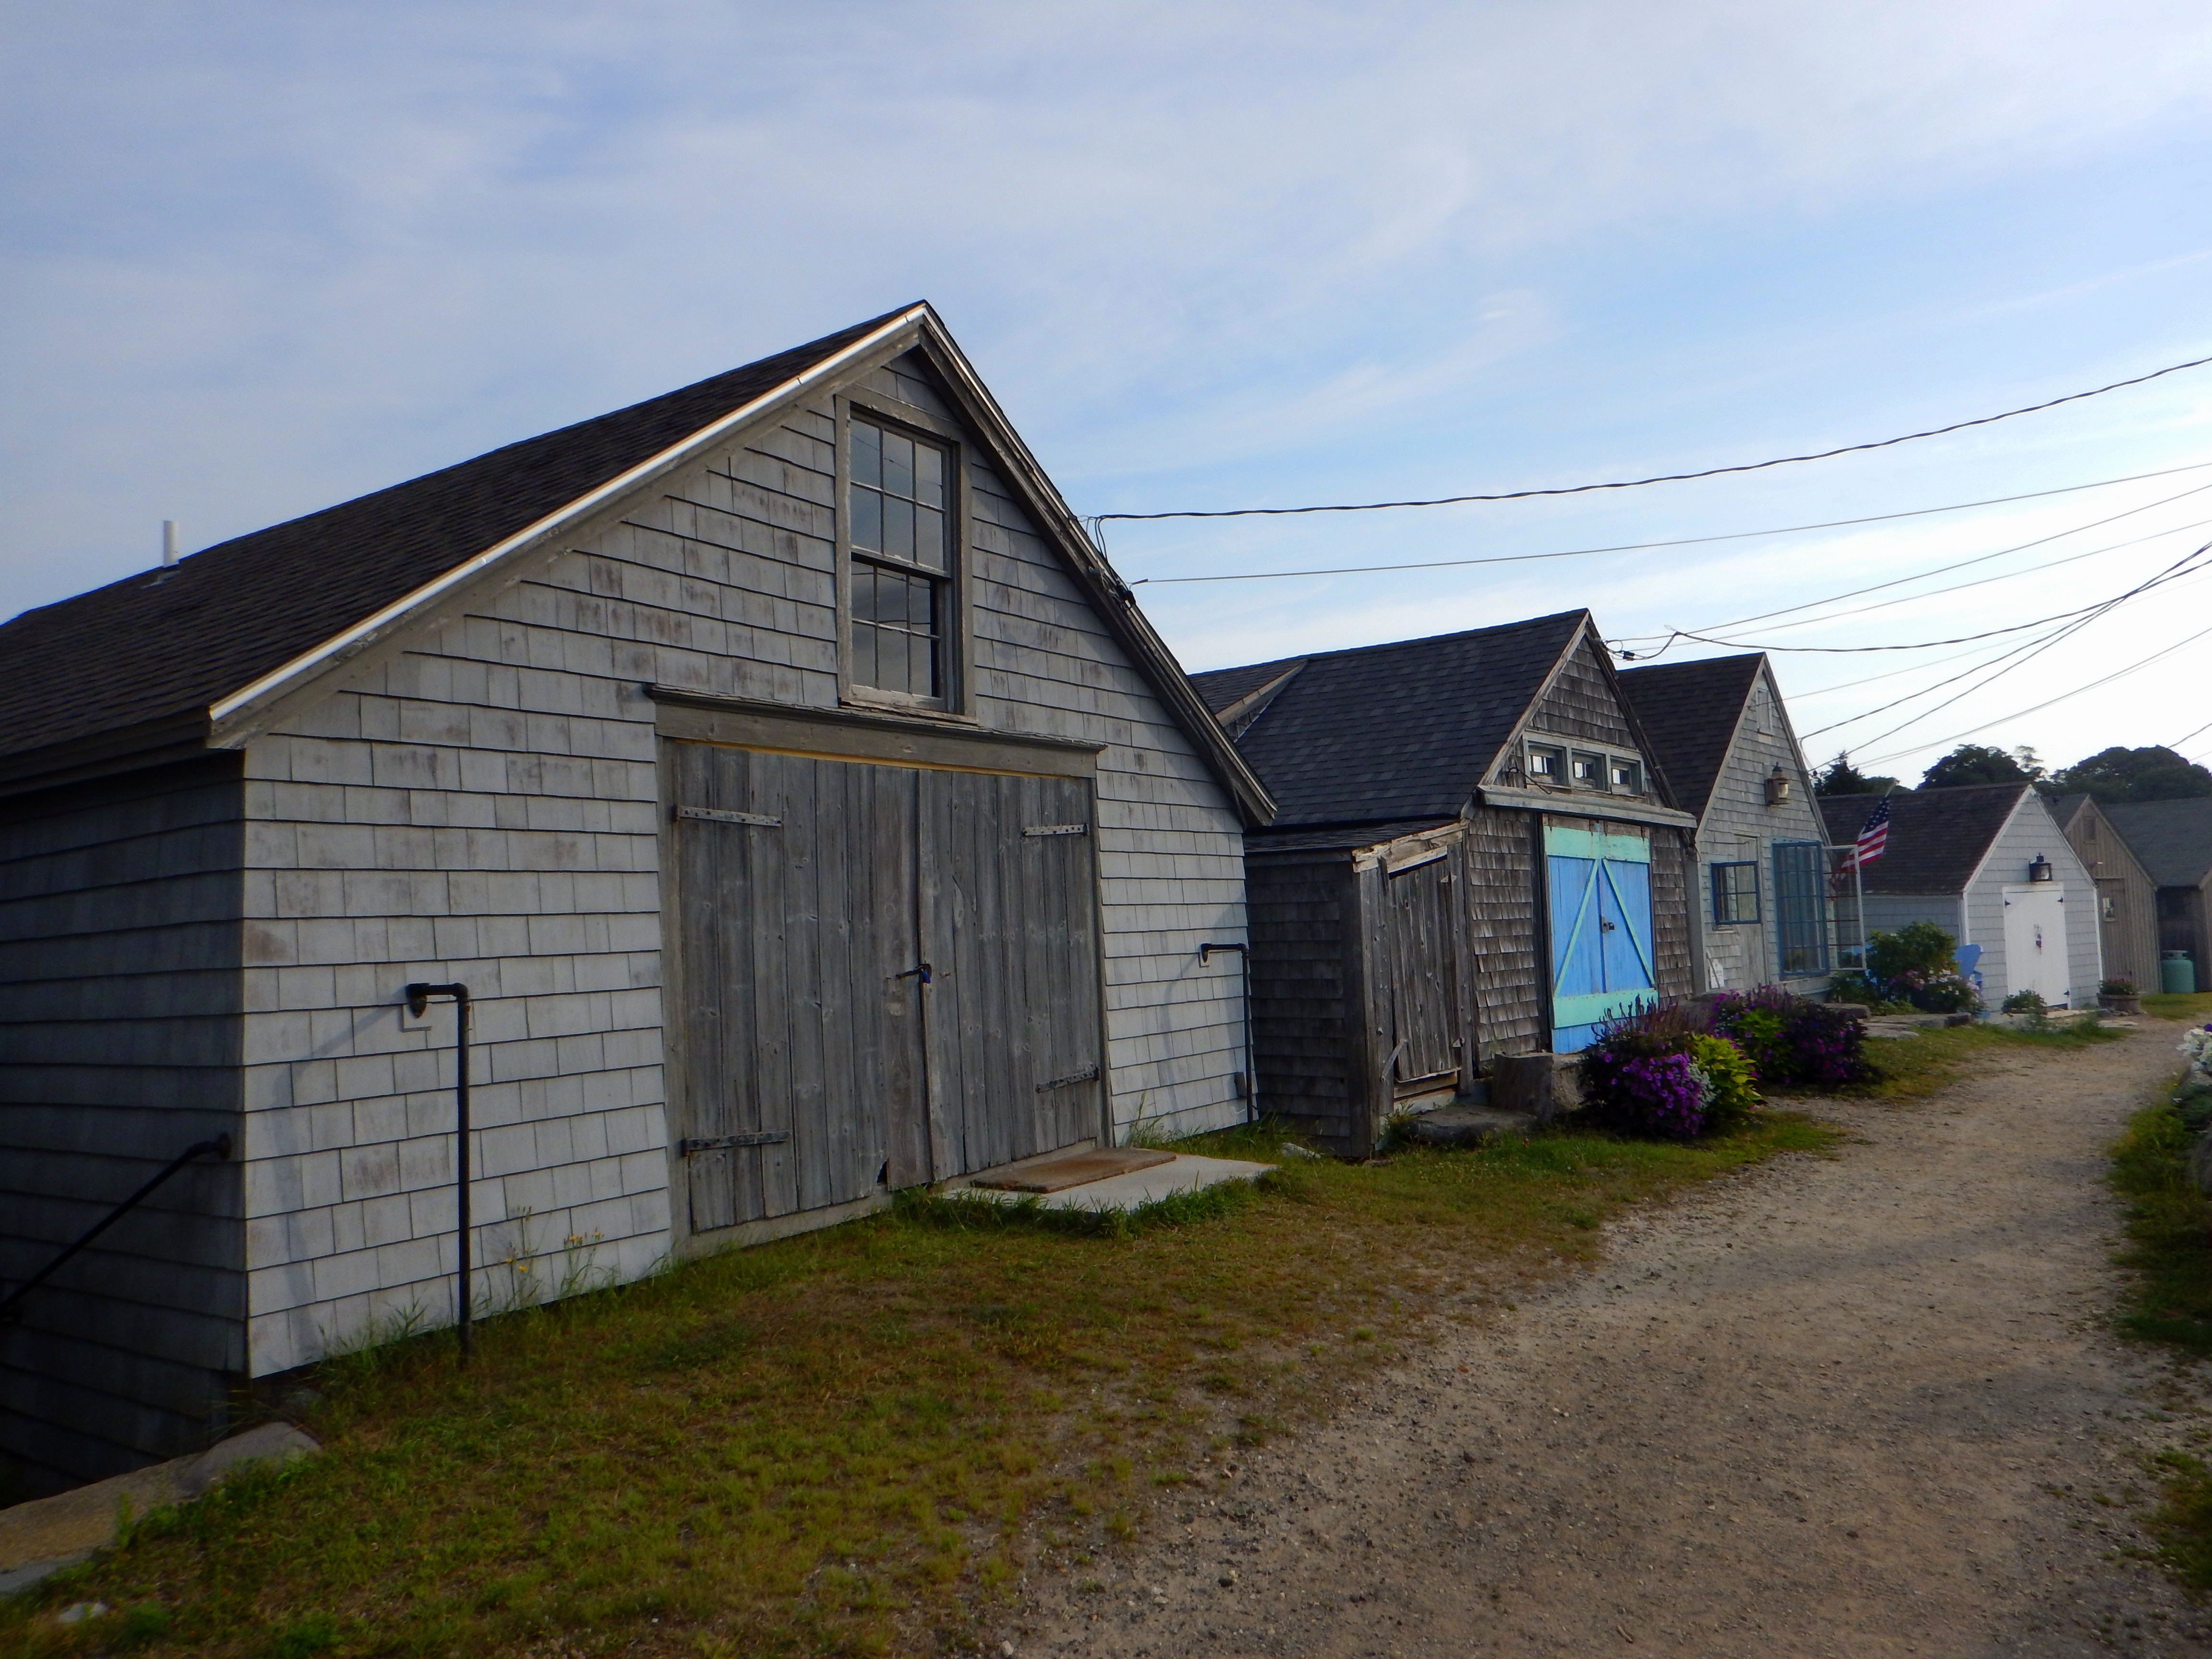 on manitoba victoria item click listing canada beach cottage road of image cottages hampton for sold